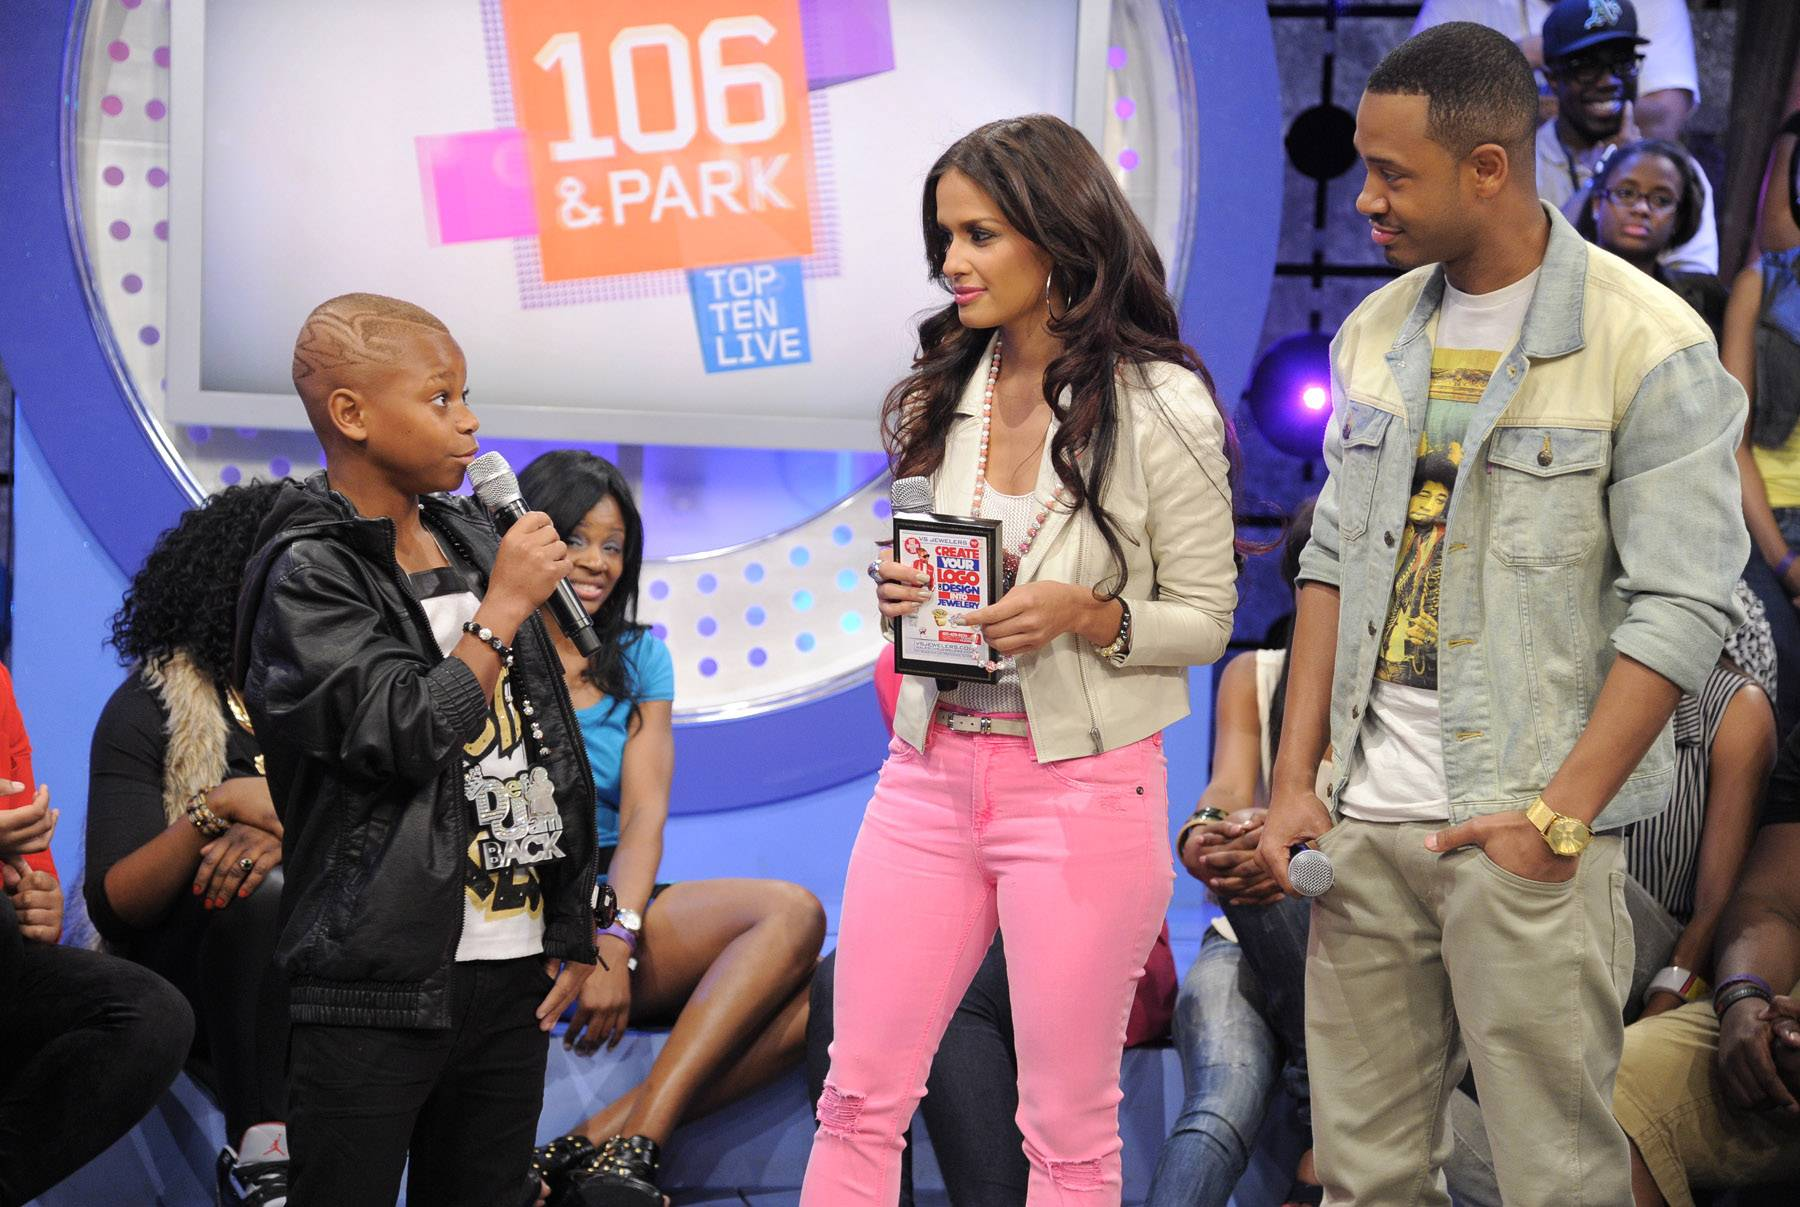 The stage - Lil Niqo with Rocsi Diaz and Terrence J at 106 & Park, May 16, 2012. (Photo: John Ricard / BET)